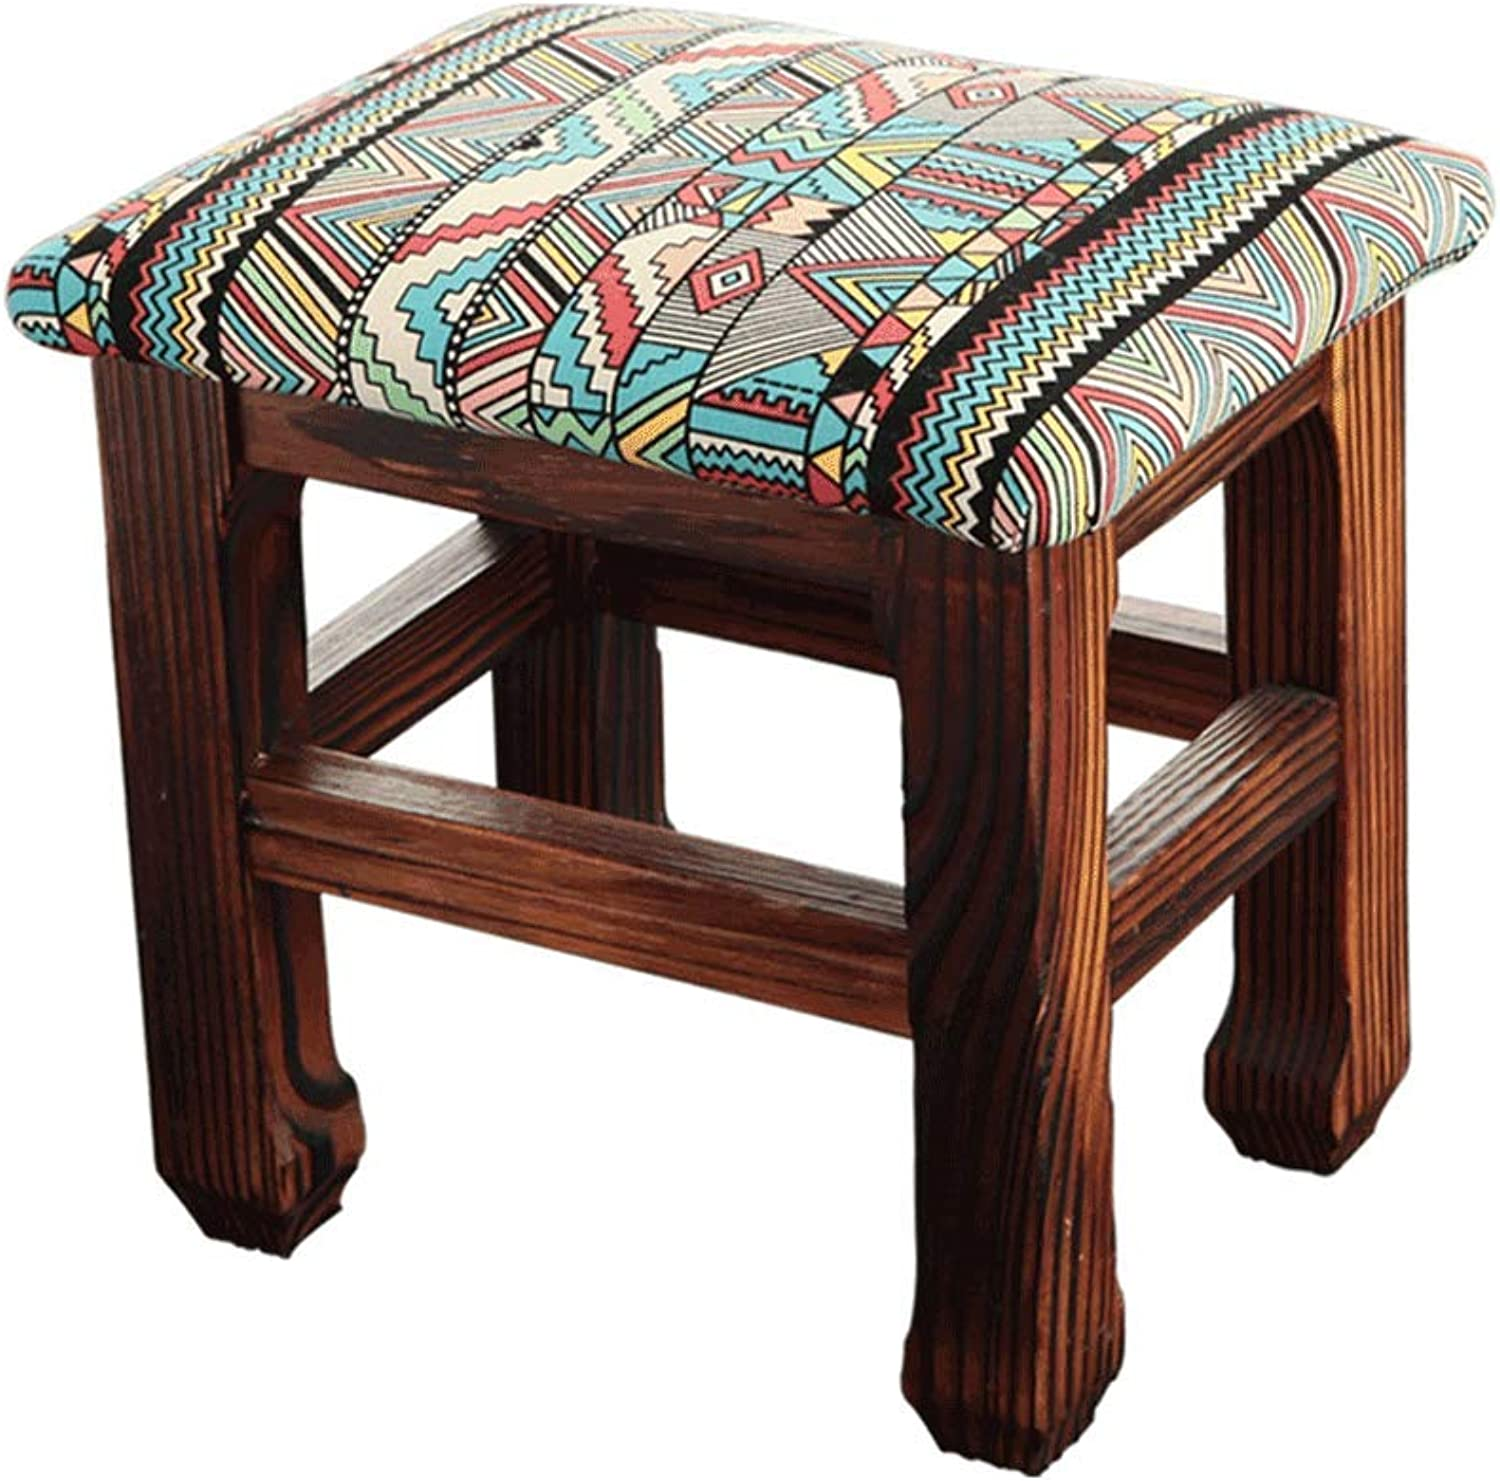 JXLBB Small Stools, Solid Wood, Pine, Fabric Stools, A Variety of Optional,26x20x25cm (color   A)